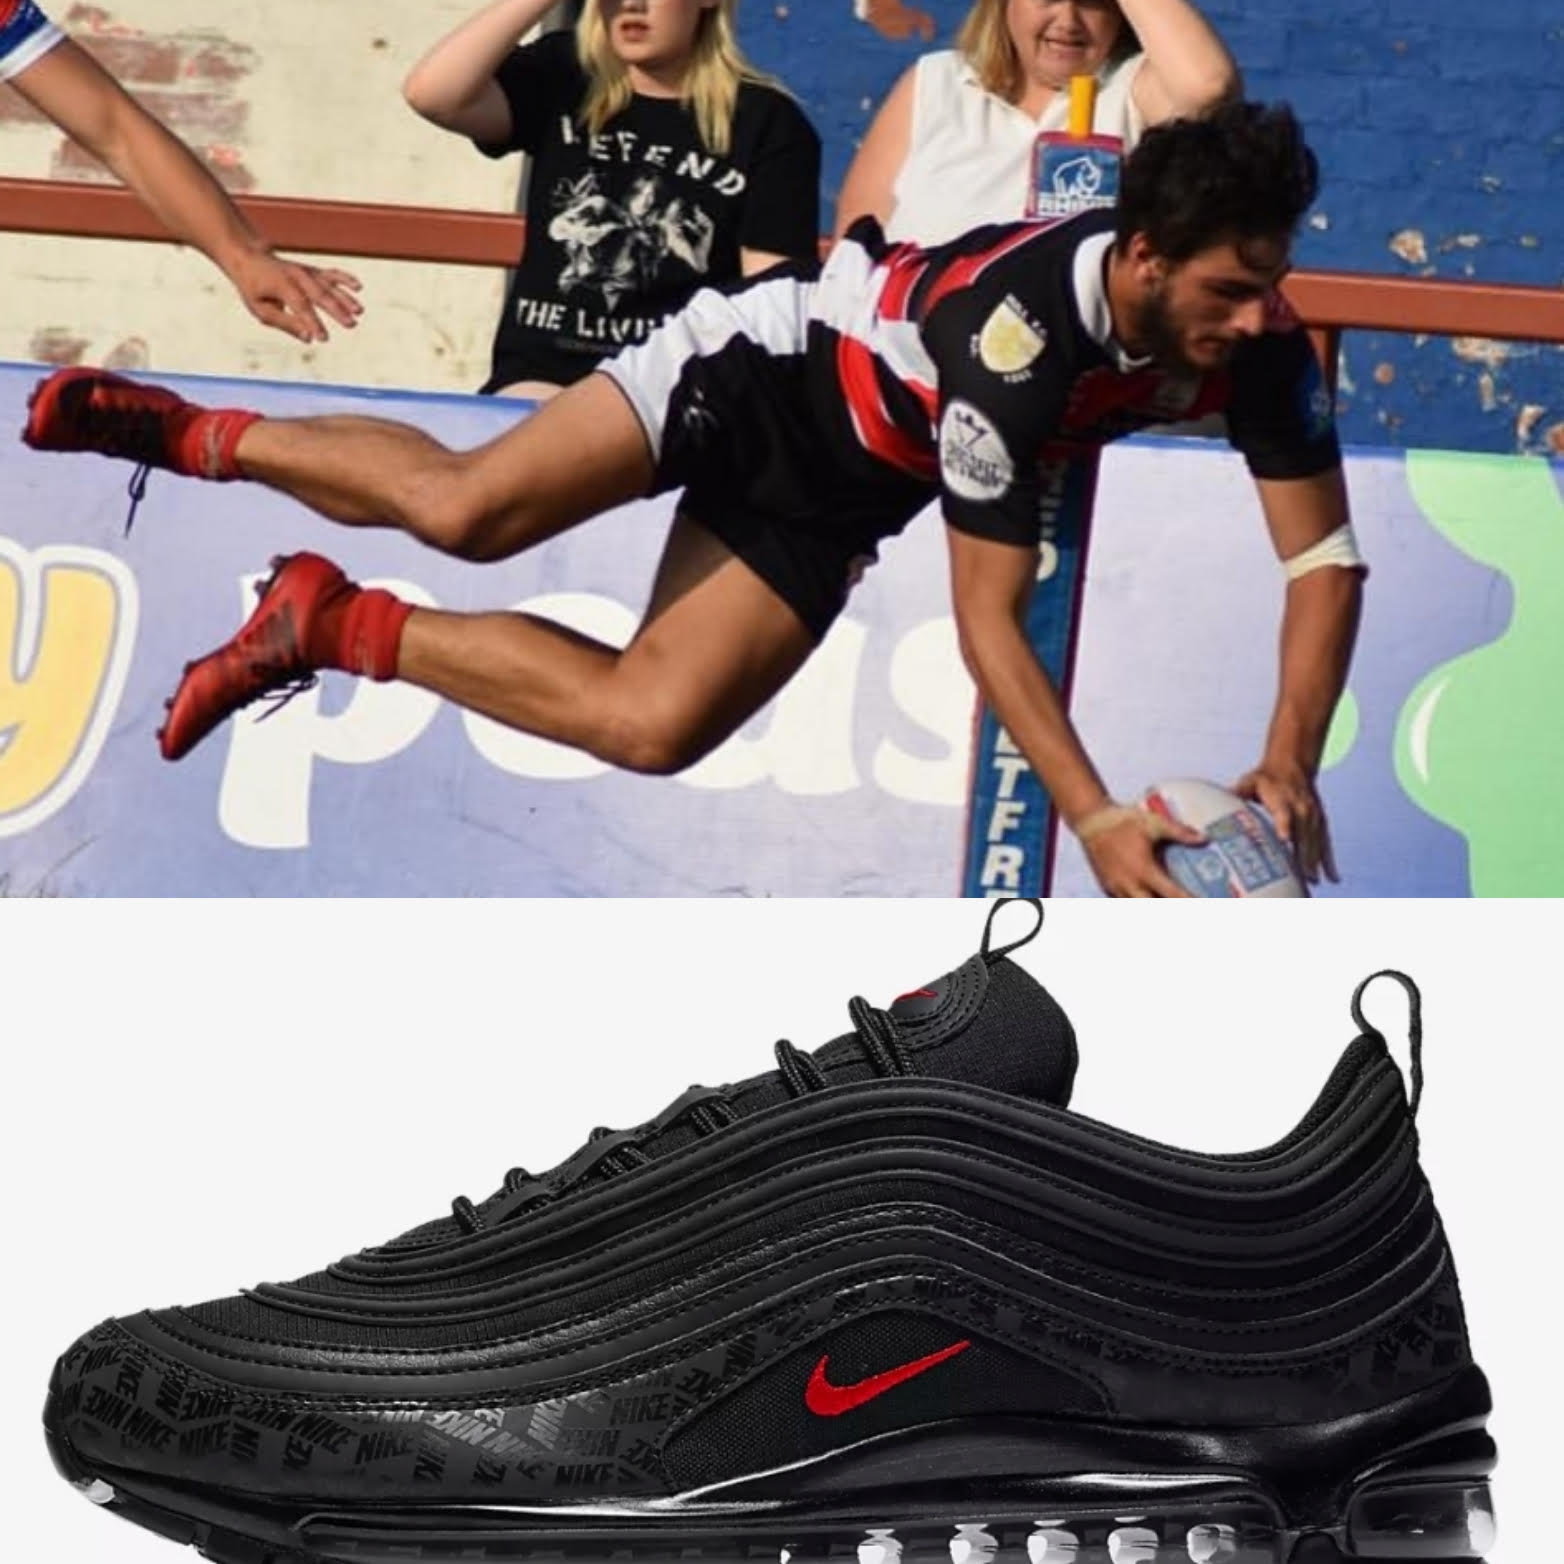 Yet to make his first team debut, Academy Star Josh Atkinson has chosen these Air Max 97's boy are they beautiful!